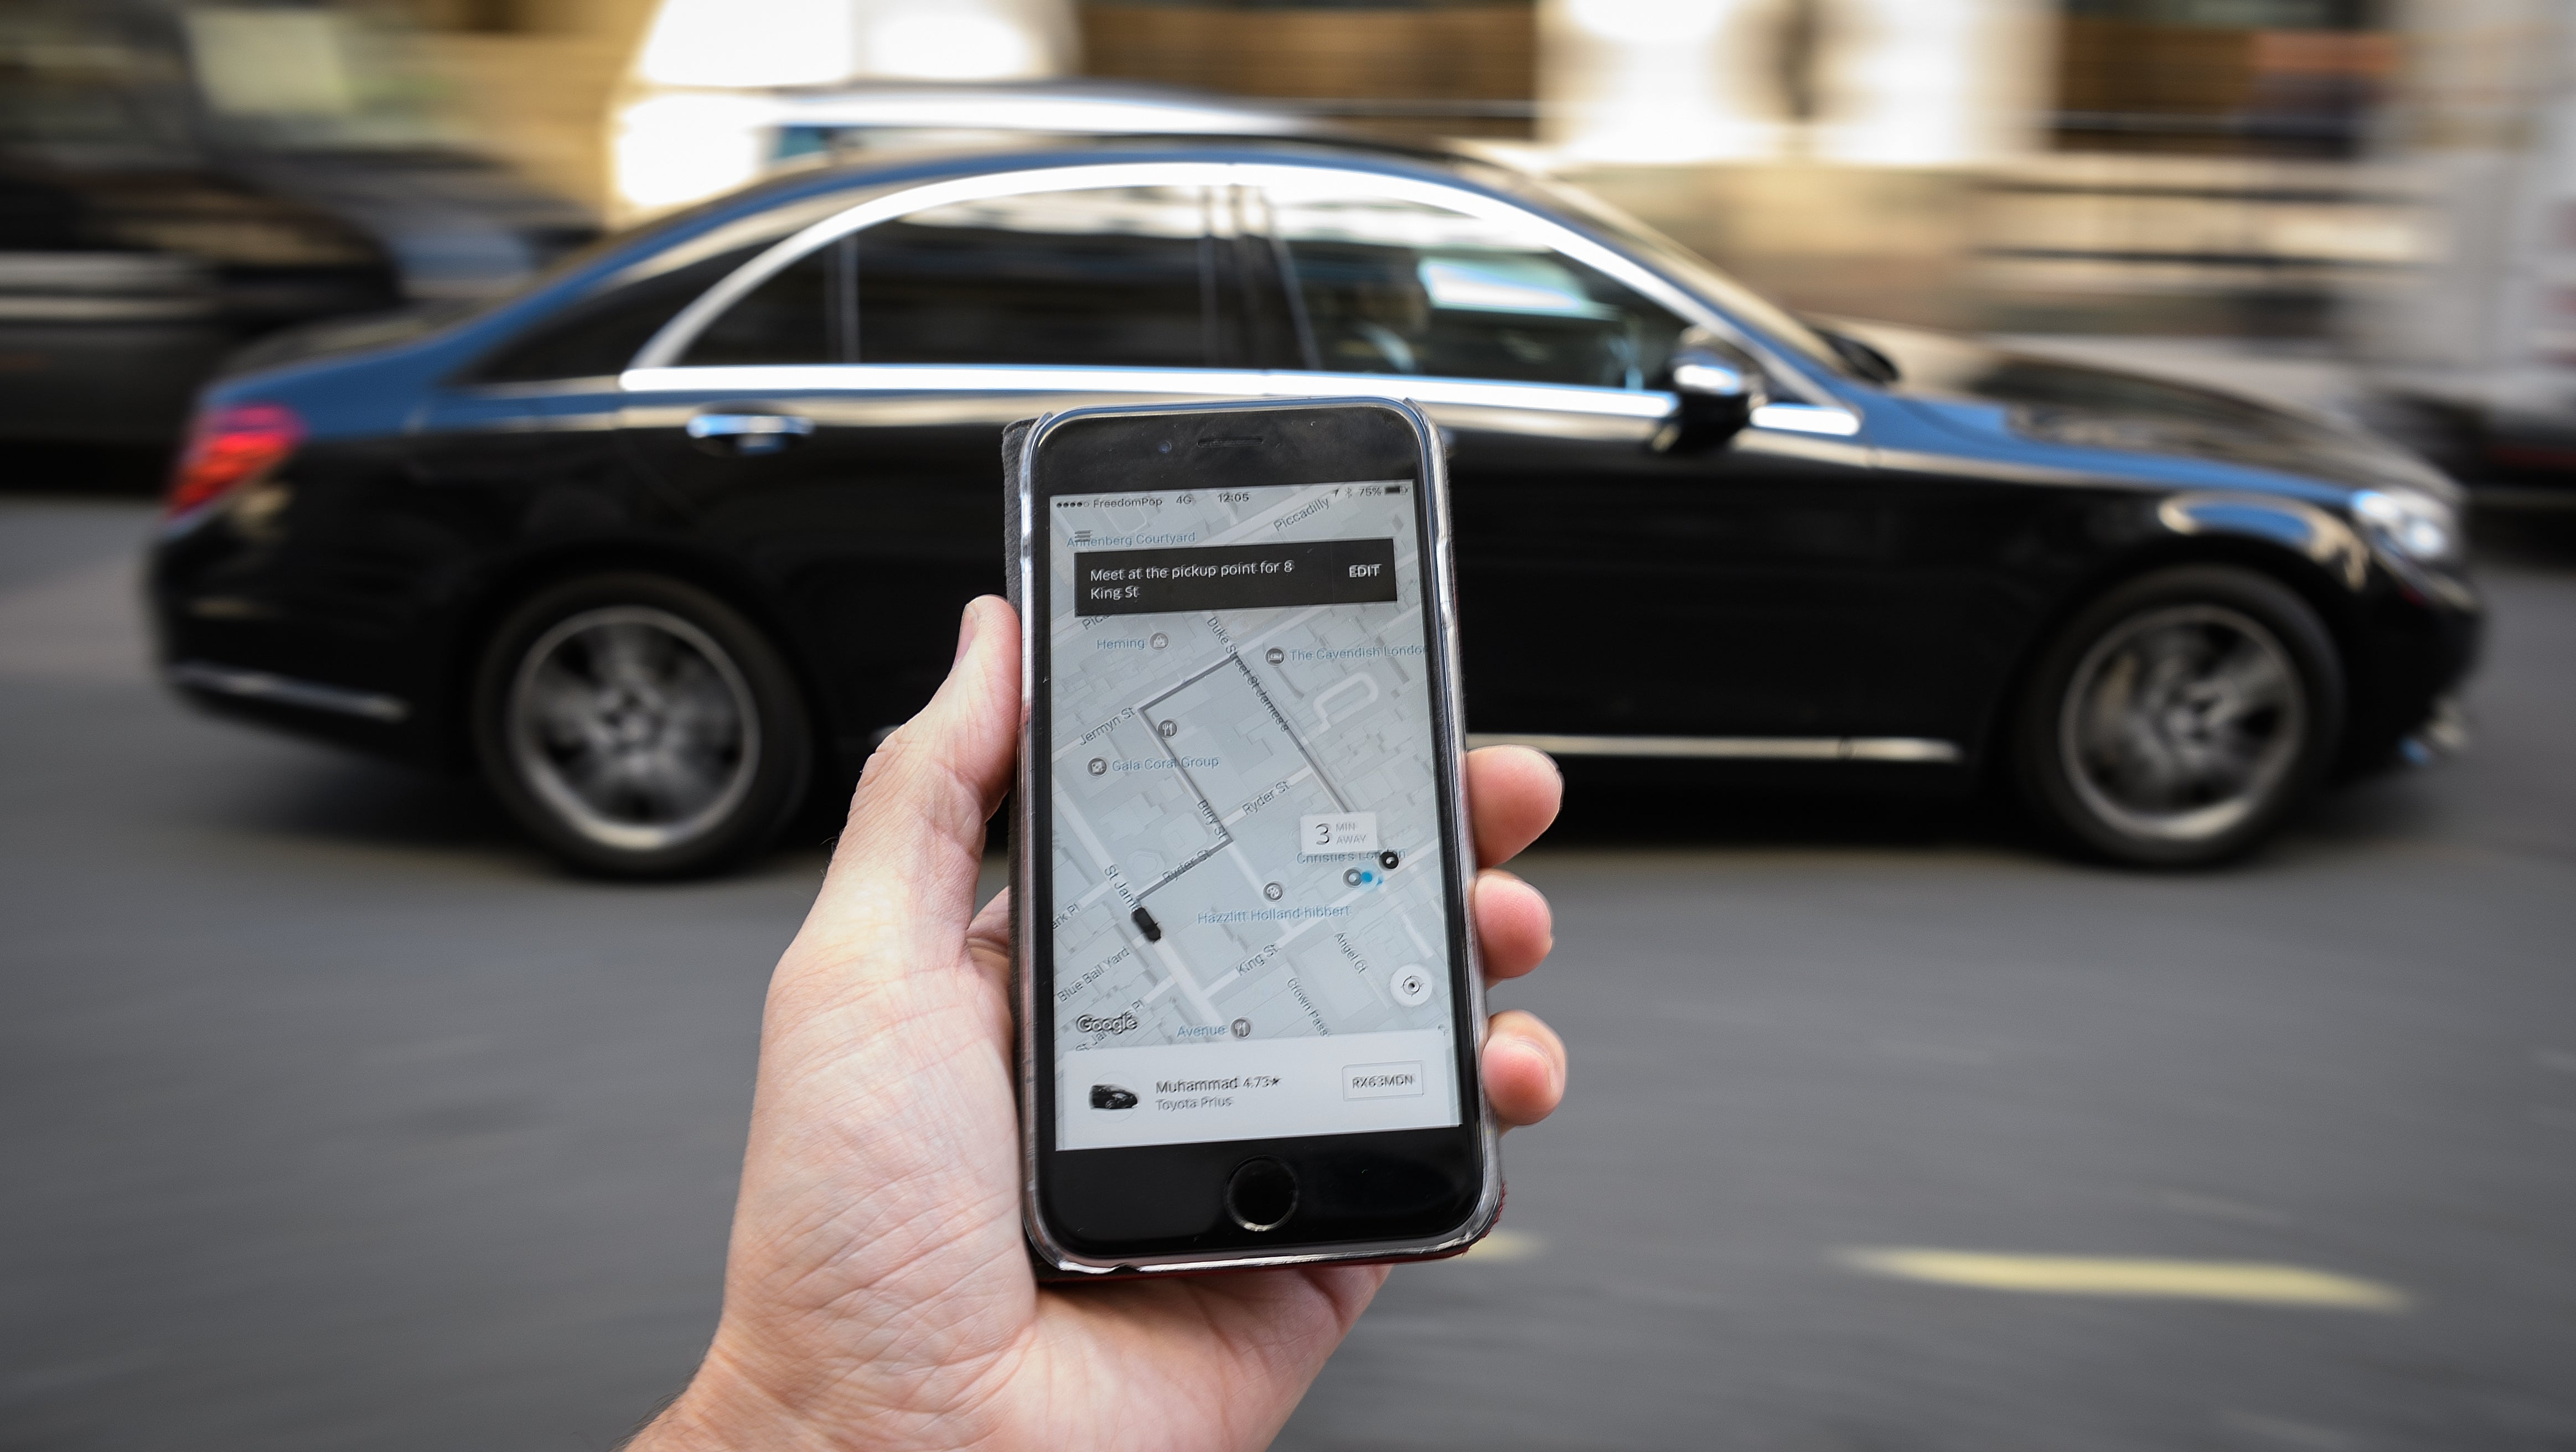 Uber Is Trying To Patent An AI System To Identify Erratic Behaviour In Riders